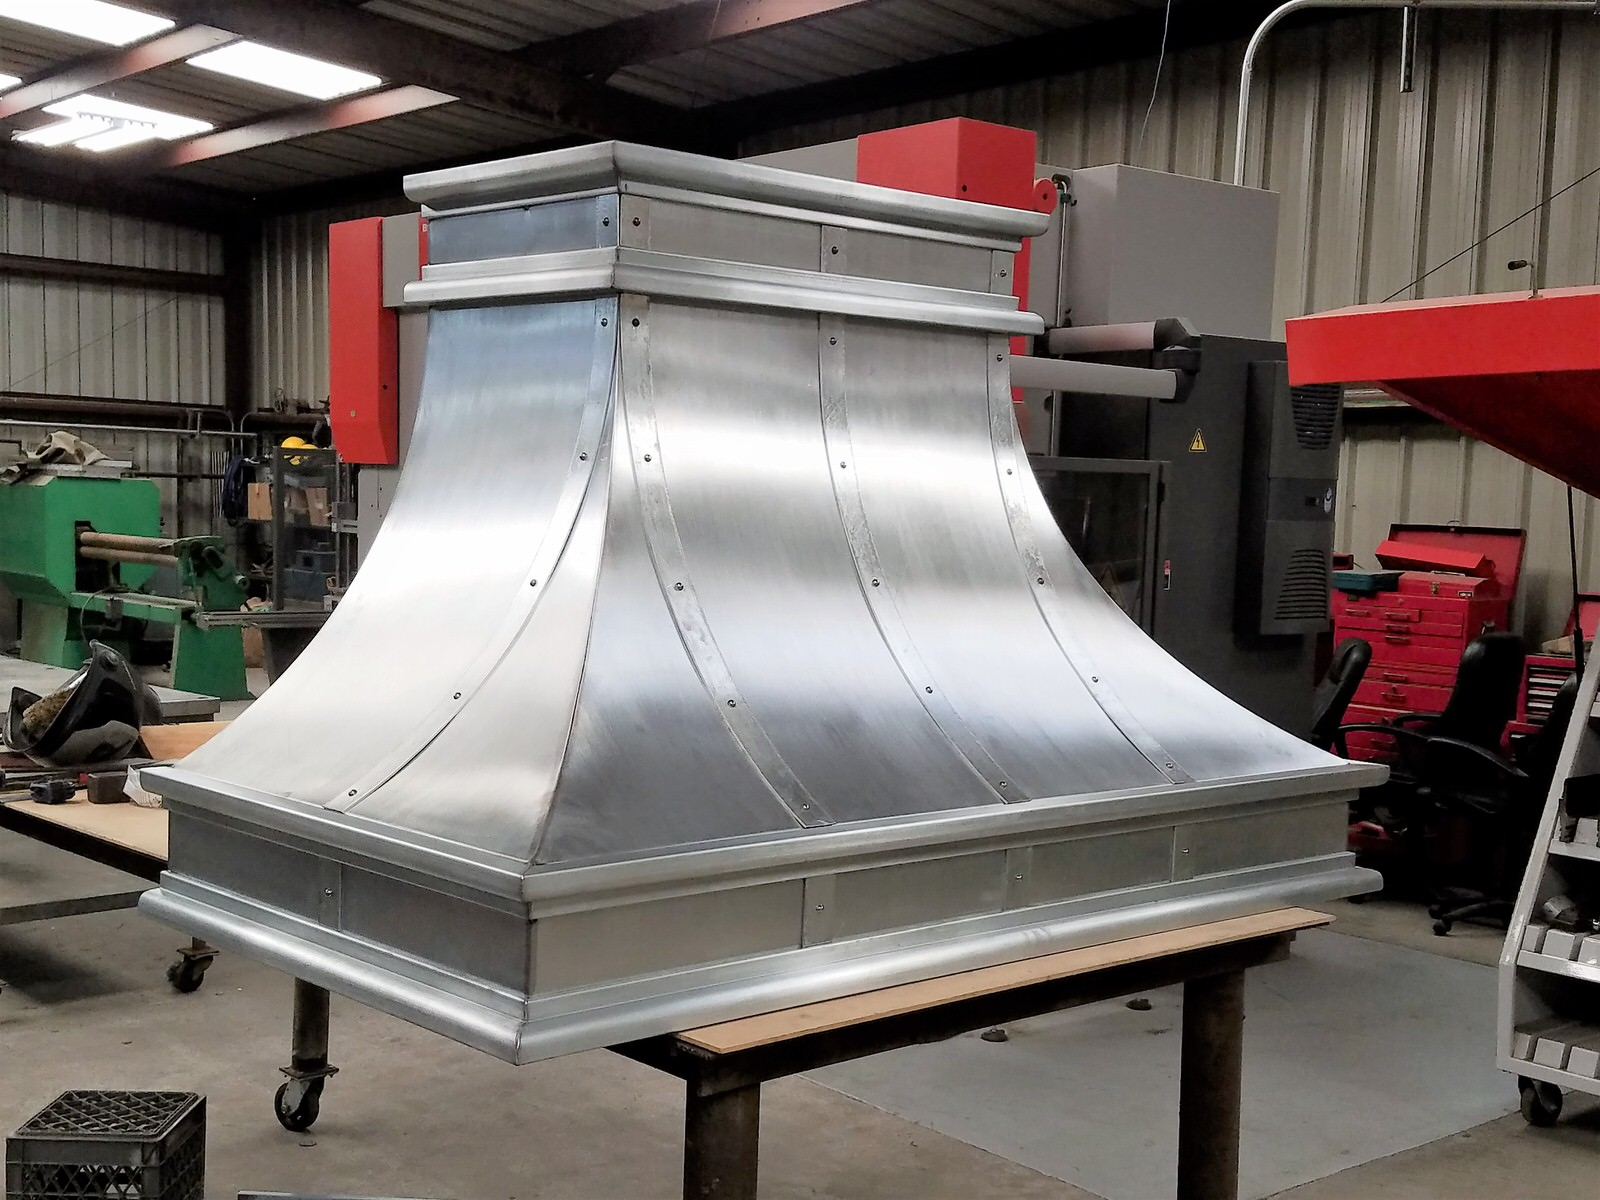 Residential Exhaust Hoods Perfection stainless 7